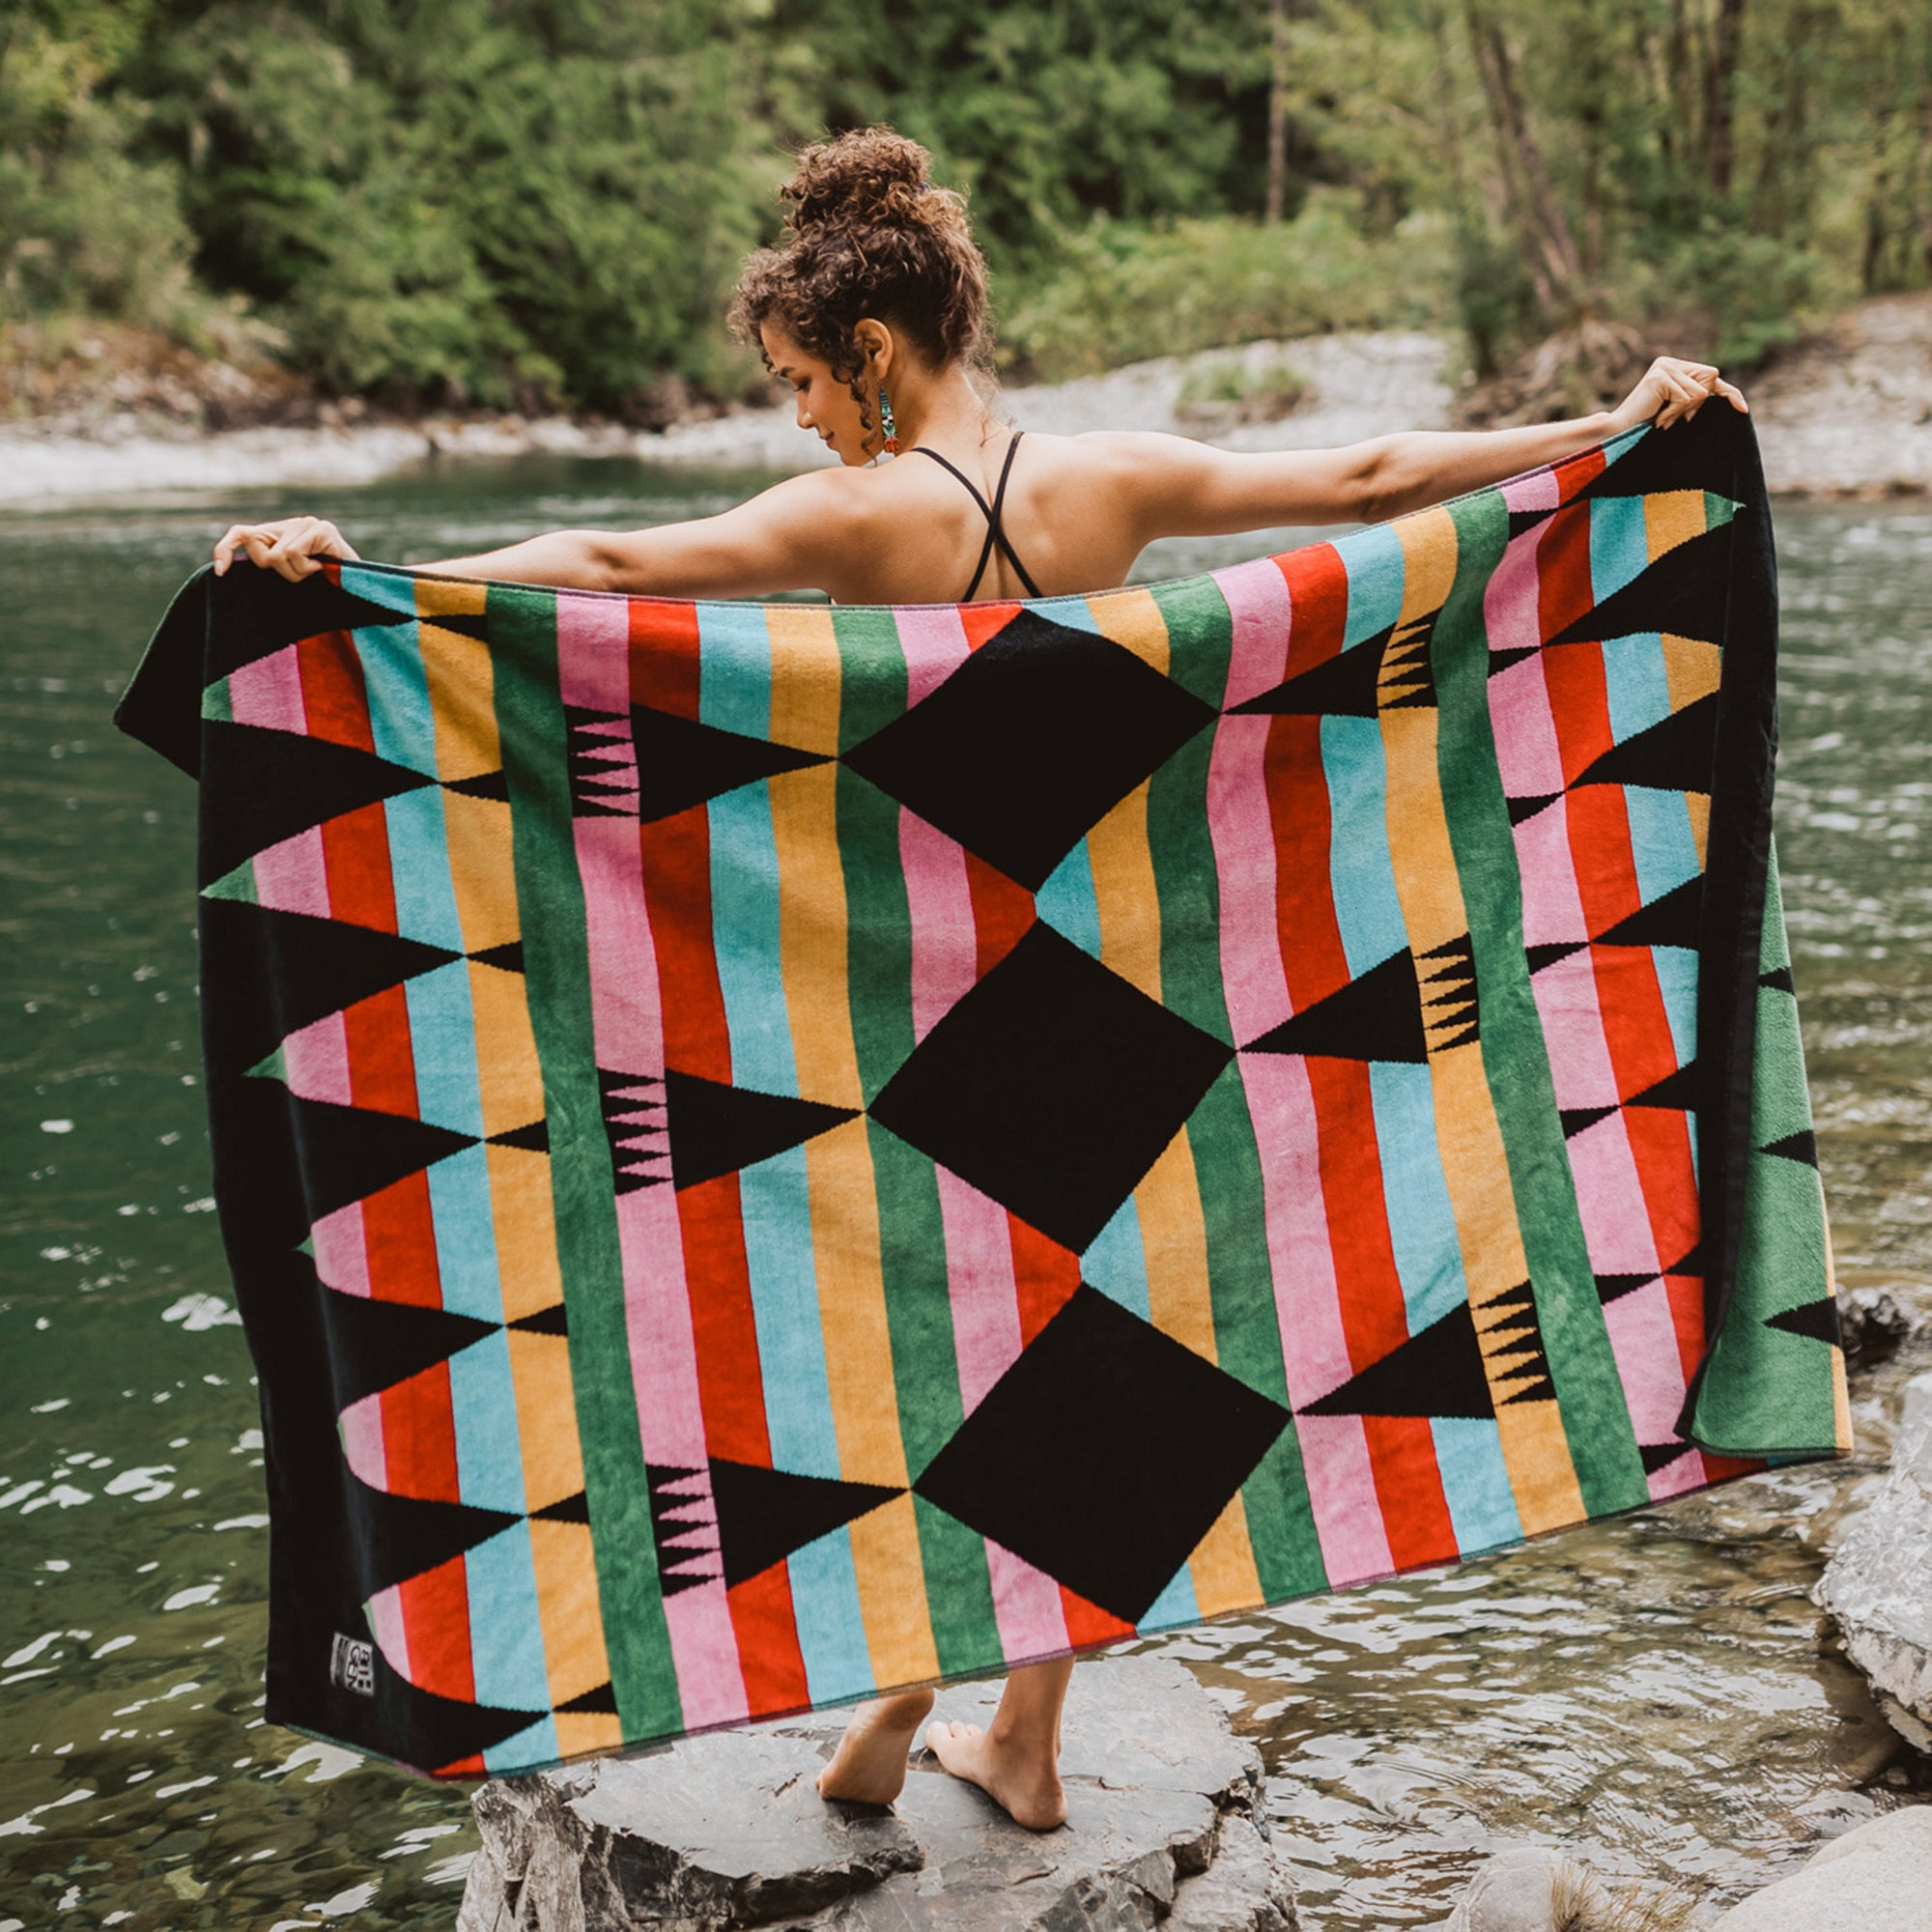 Woman-stands-on-rock-near-water-and-holds-towel-out-behind-her-to-display-the-green-pink-red-blue-orange-ribbons-design